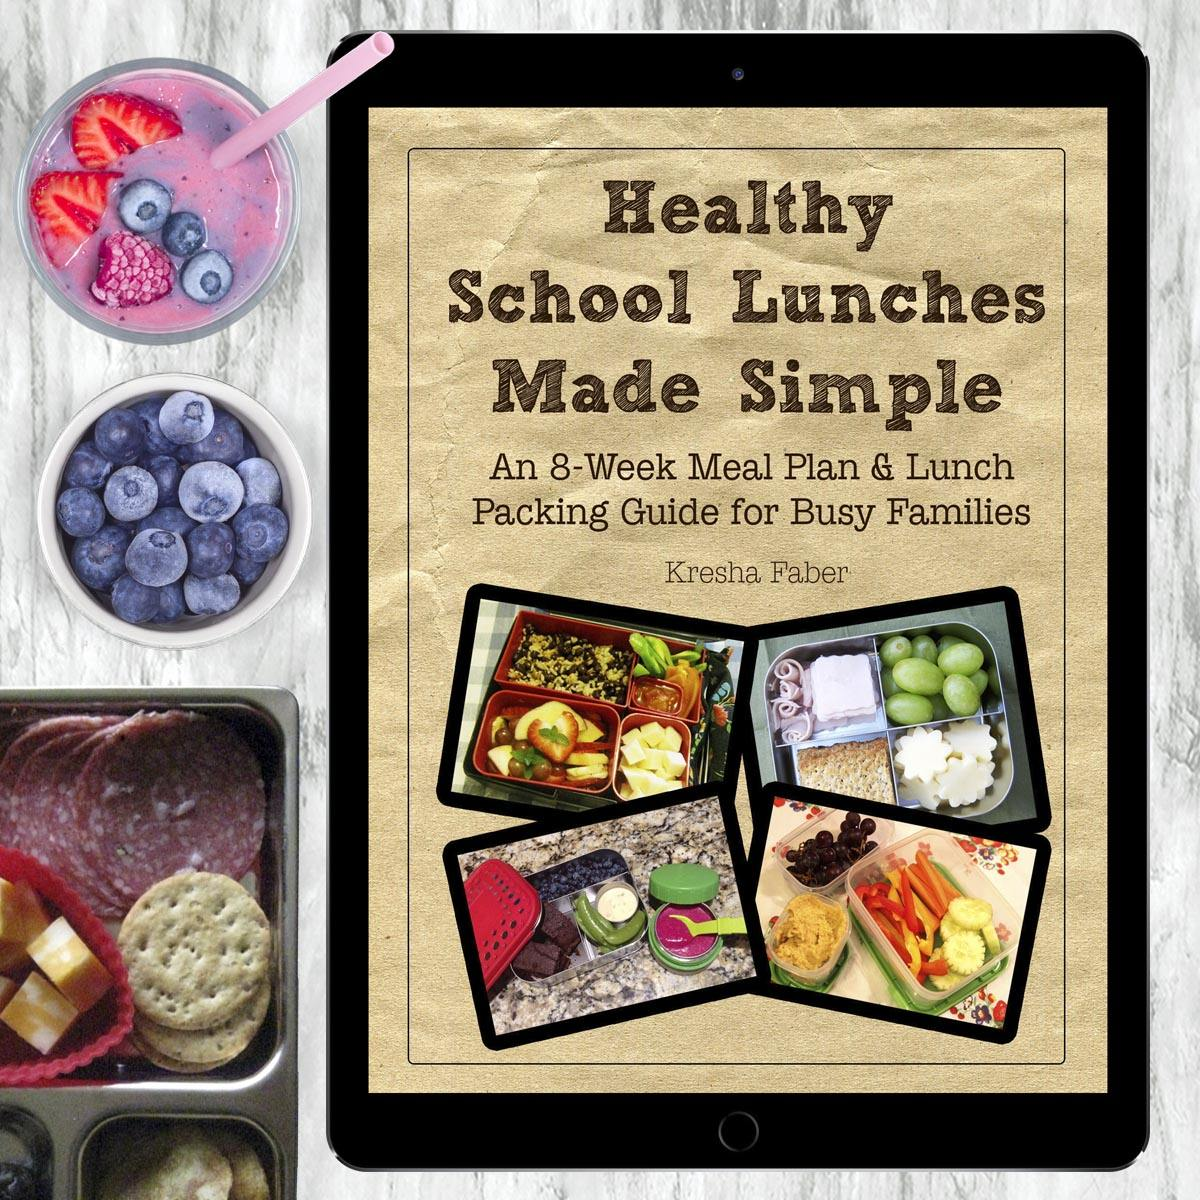 Healthy School Lunches Made Simple